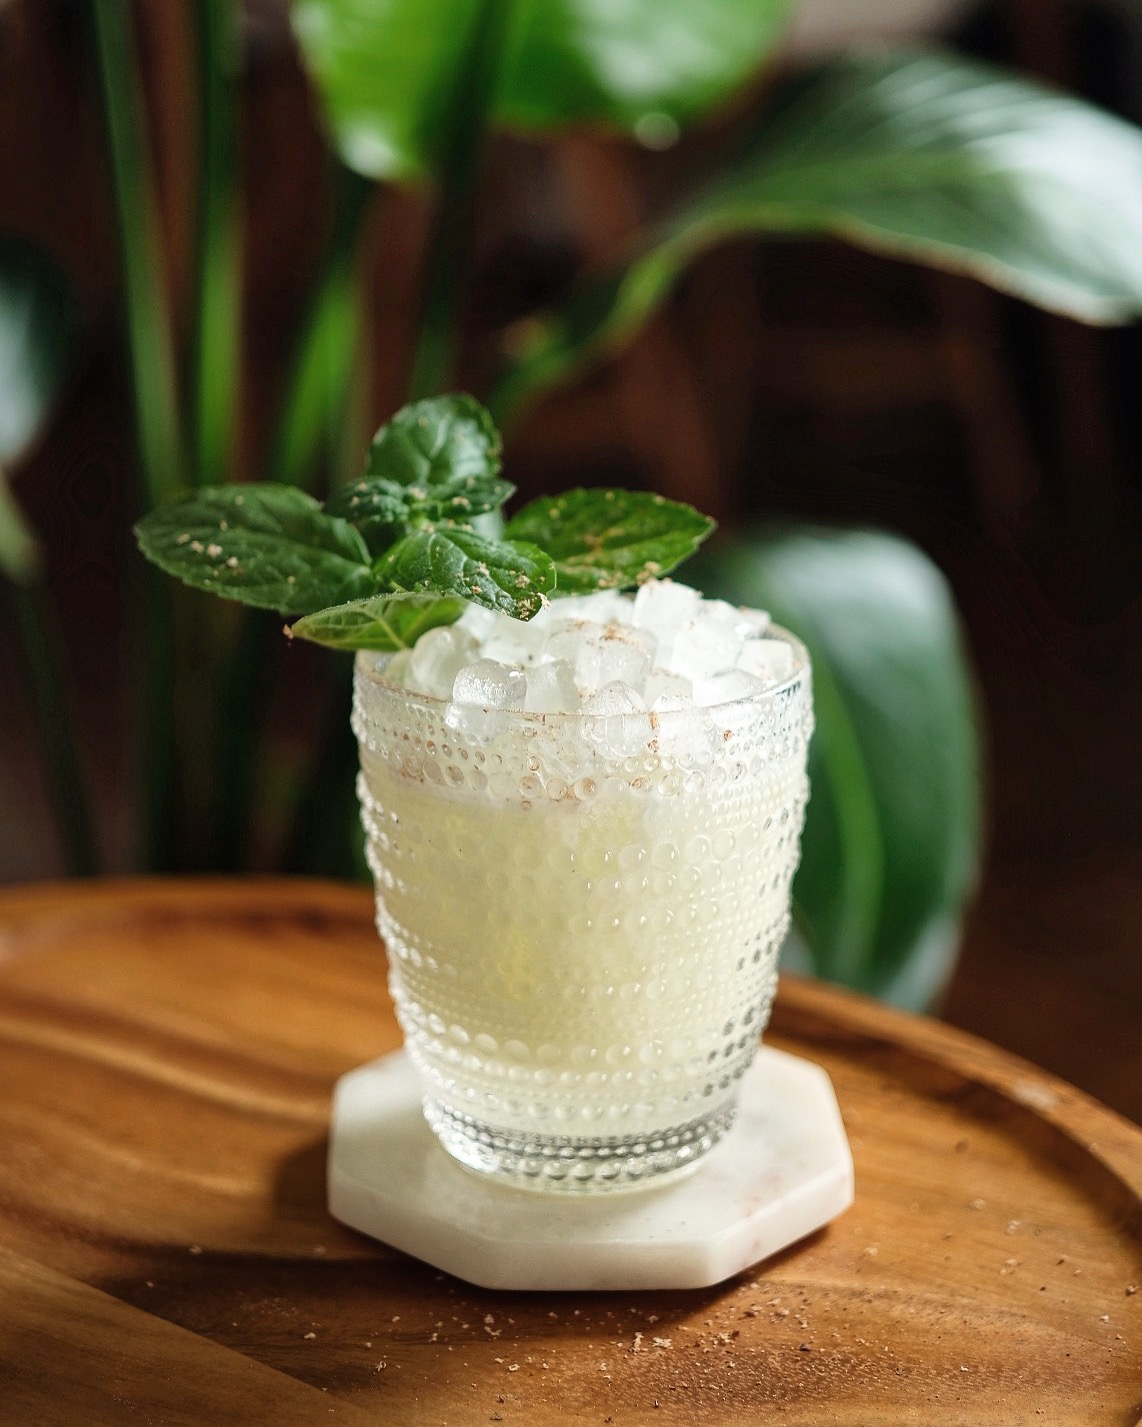 ingredients: - 1 oz The Walter Collective Gin¾ oz Green Chartreuse¾ oz fresh lime juice½ oz cream of coconut½ oz orgeat3 dashes orange bitters